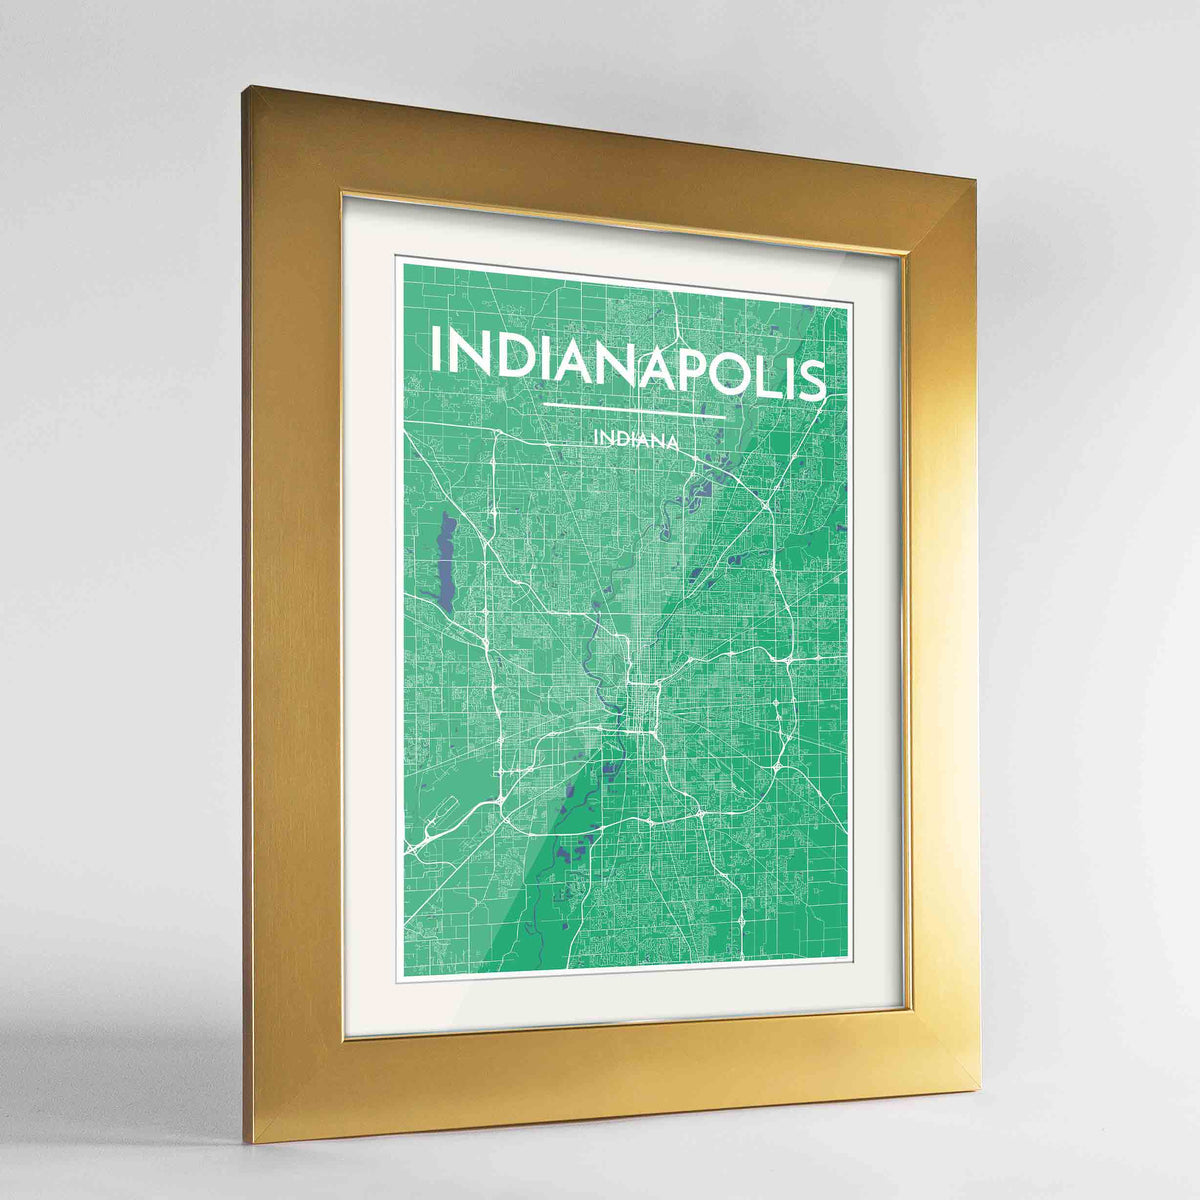 "Framed Indianapolis Map Art Print 24x36"" Gold frame Point Two Design Group"